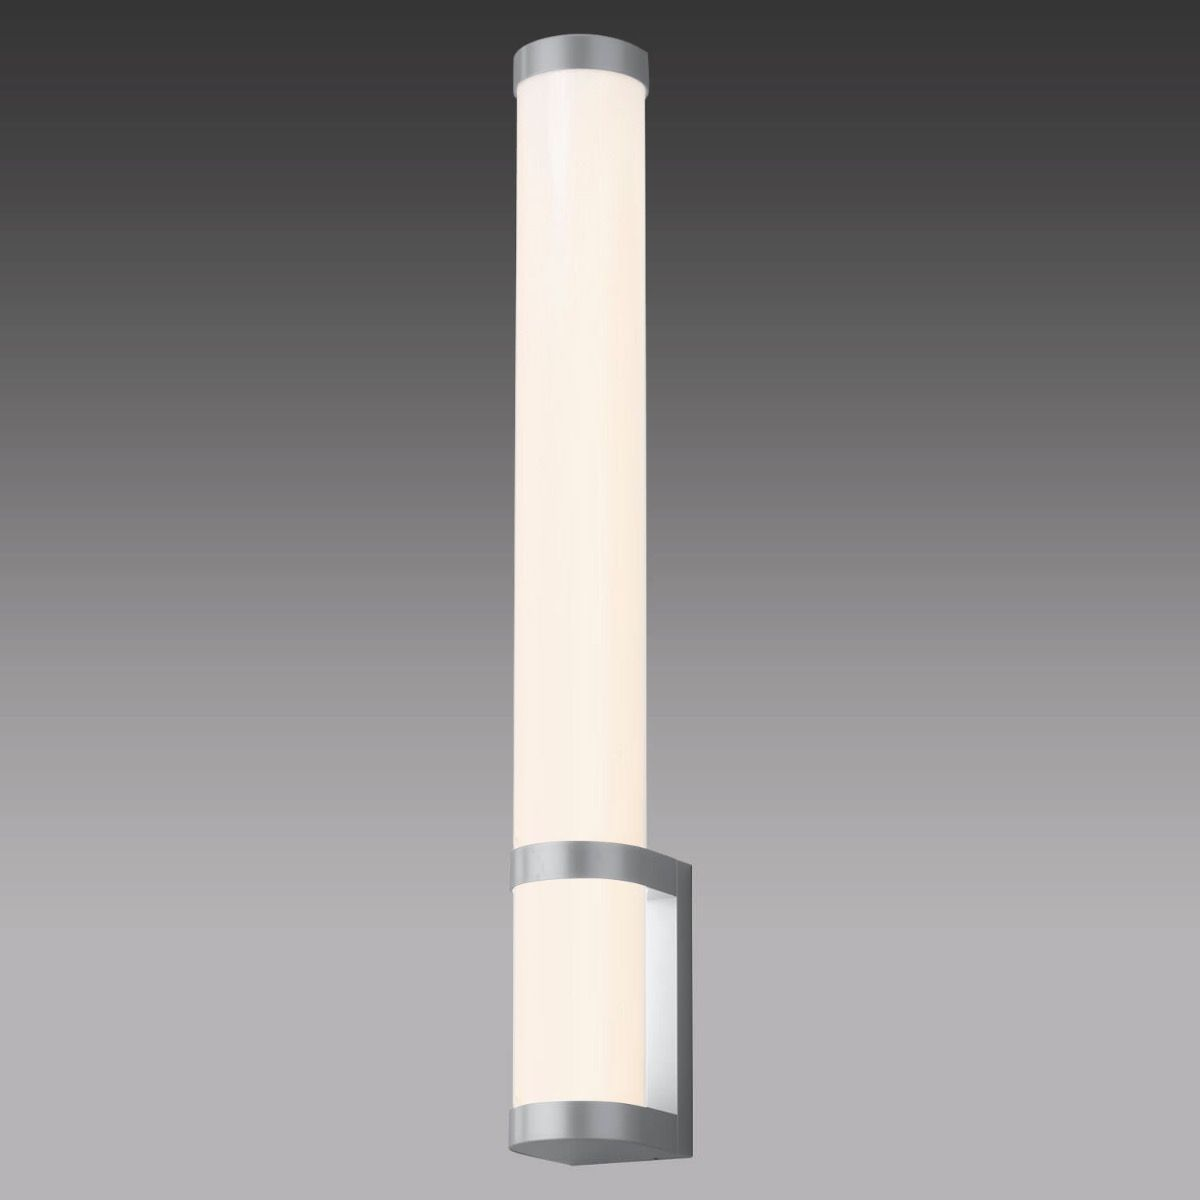 Alcon Lighting 11250 Hydrogen Architectural Led Wall Mount Linear Sconce Alcon Lighting